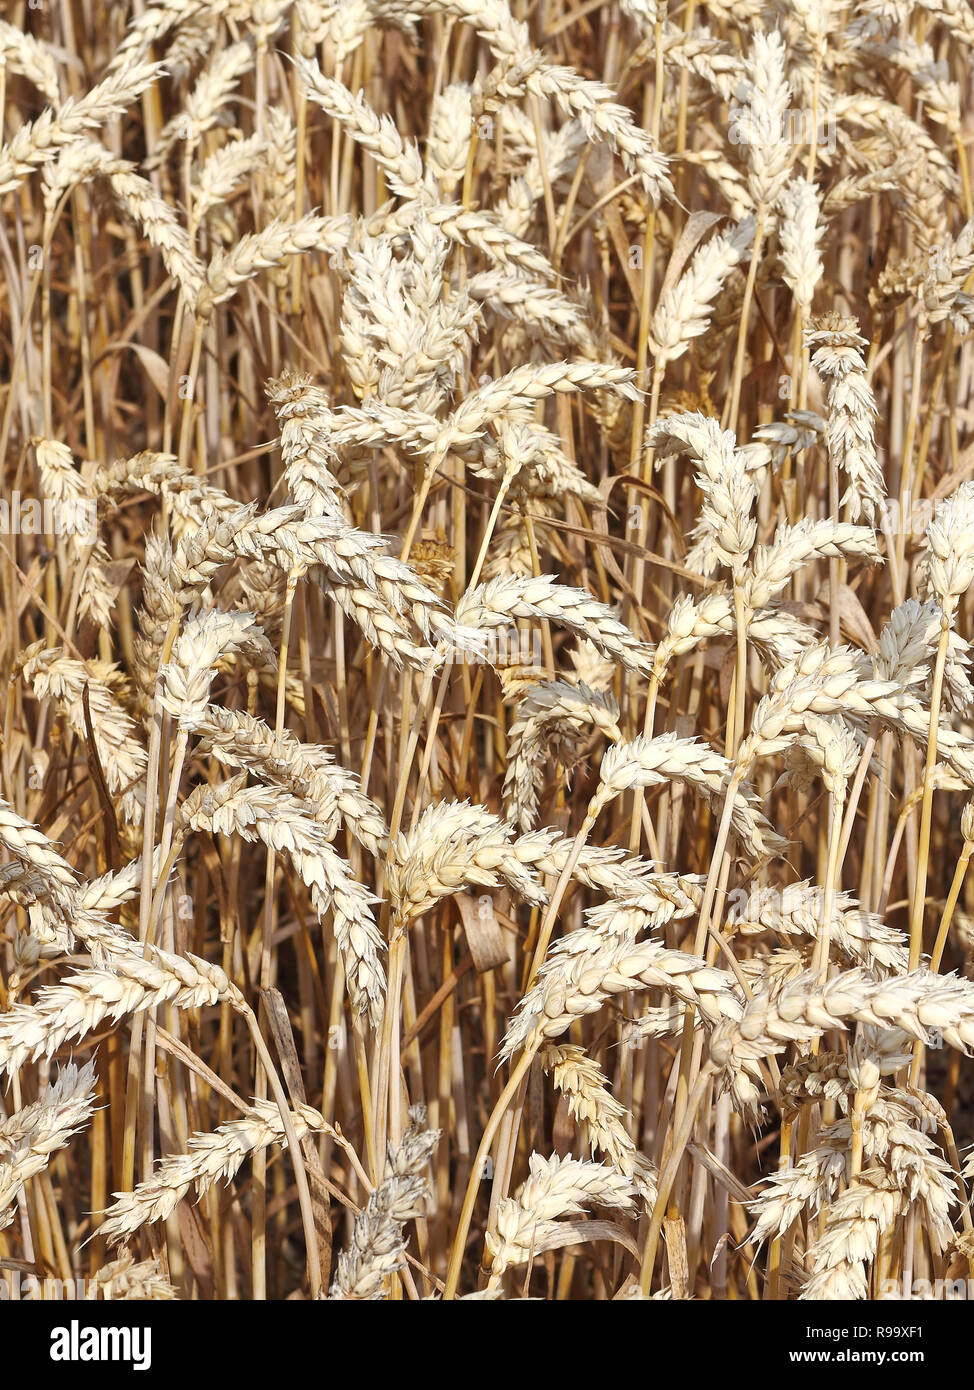 A ripe wheat field shortly before harvest - Stock Image